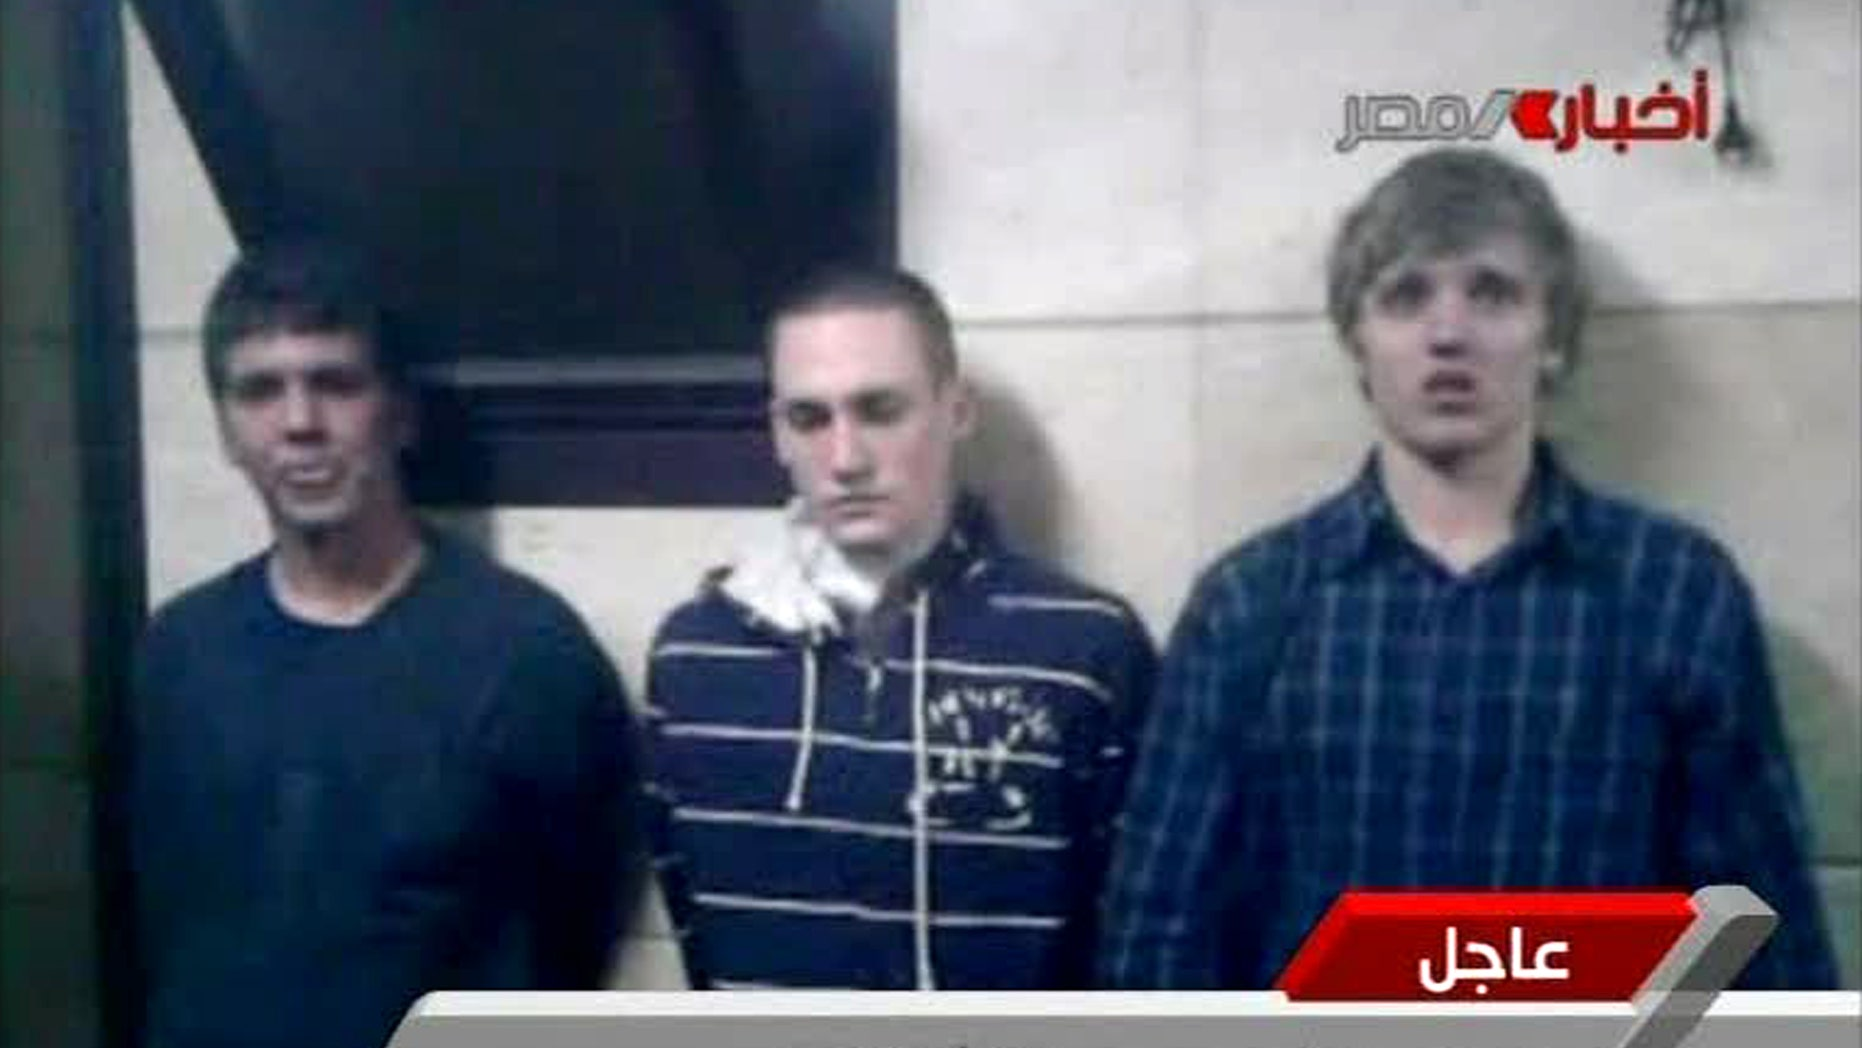 Nov 22 2011: Three American students are displayed to the camera by Egyptian authorities following their arrest during protests in Cairo, where an Egyptian official said they were throwing firebombs at security forces.